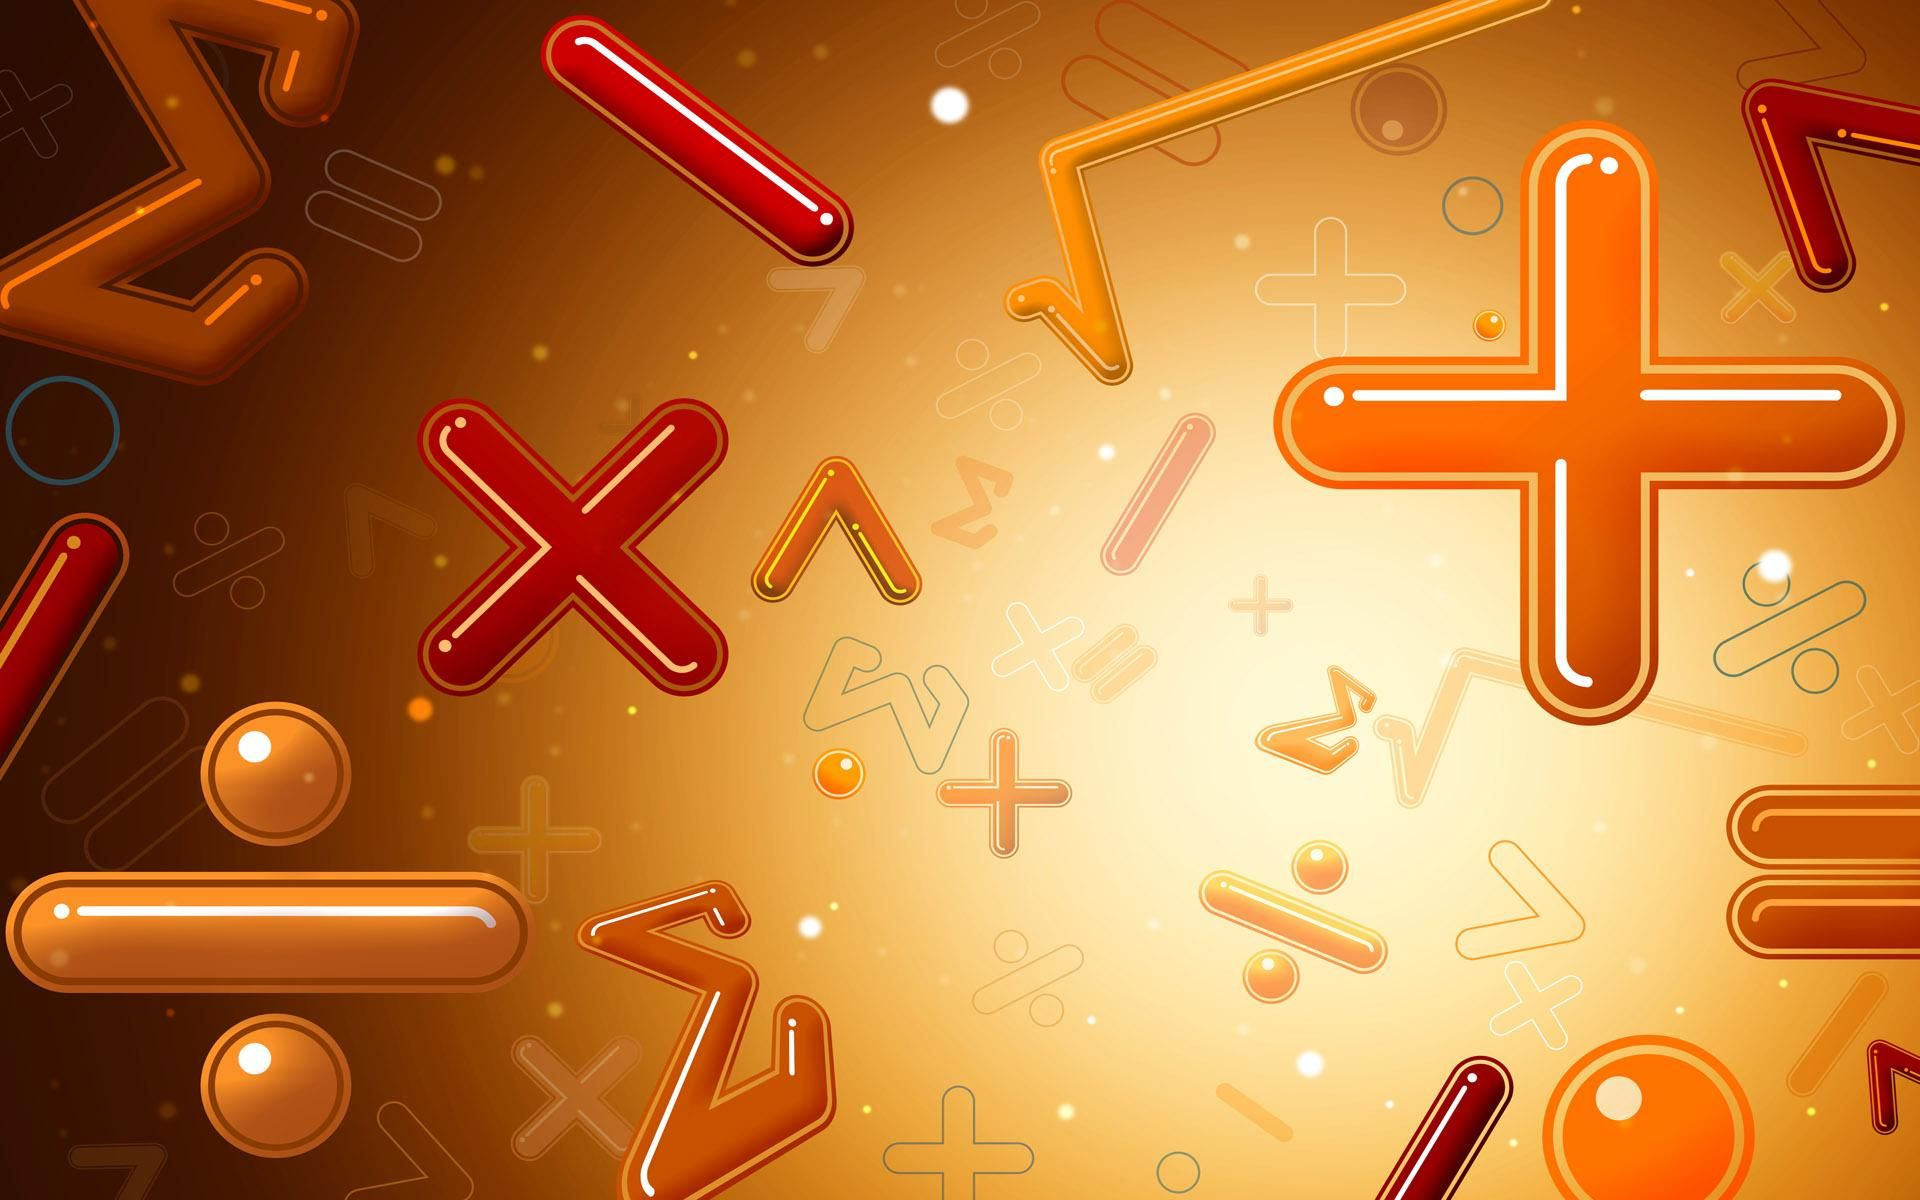 Math background for powerpoint juvecenitdelacabrera math background for powerpoint toneelgroepblik Gallery